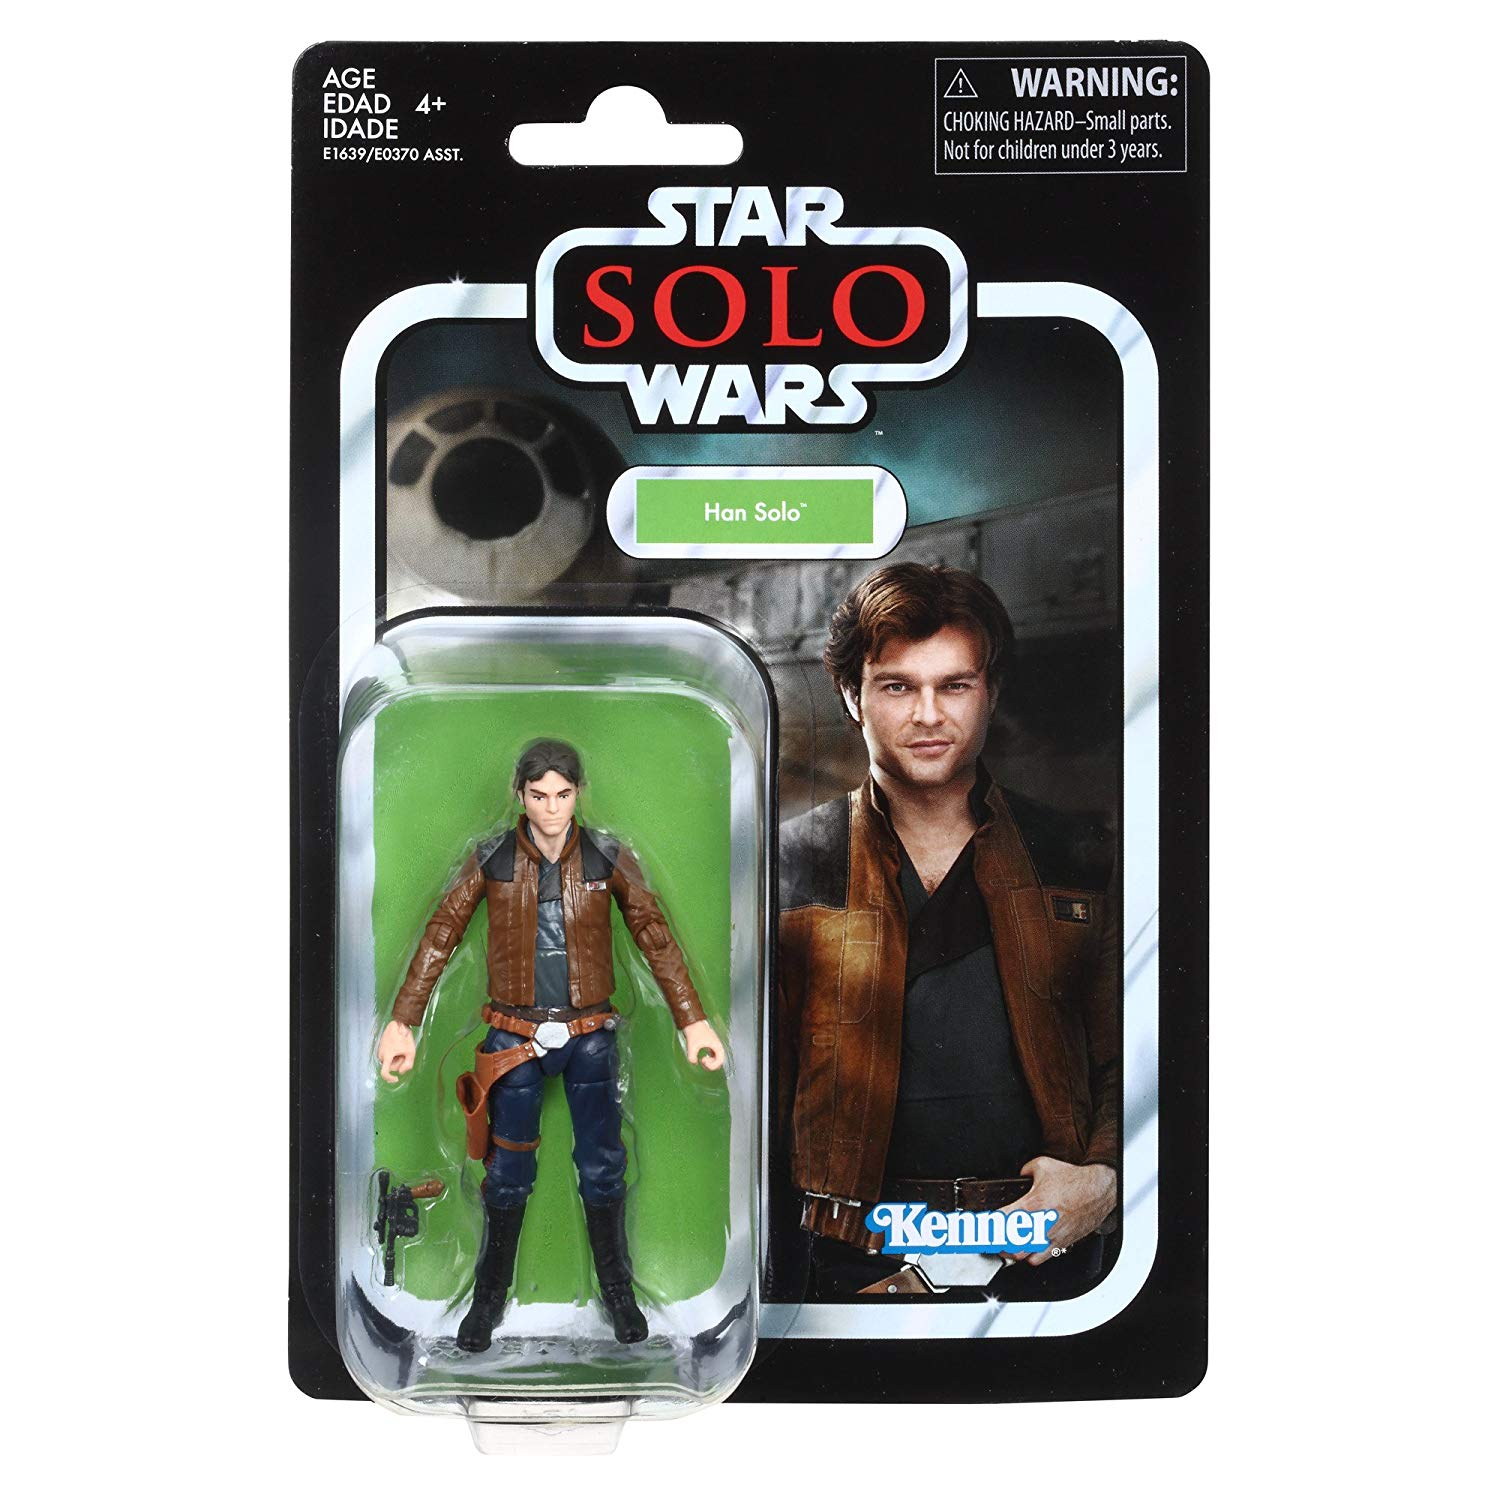 Hasbro Star Wars: The Vintage Collection Wave 2 Figure Pre-Orders